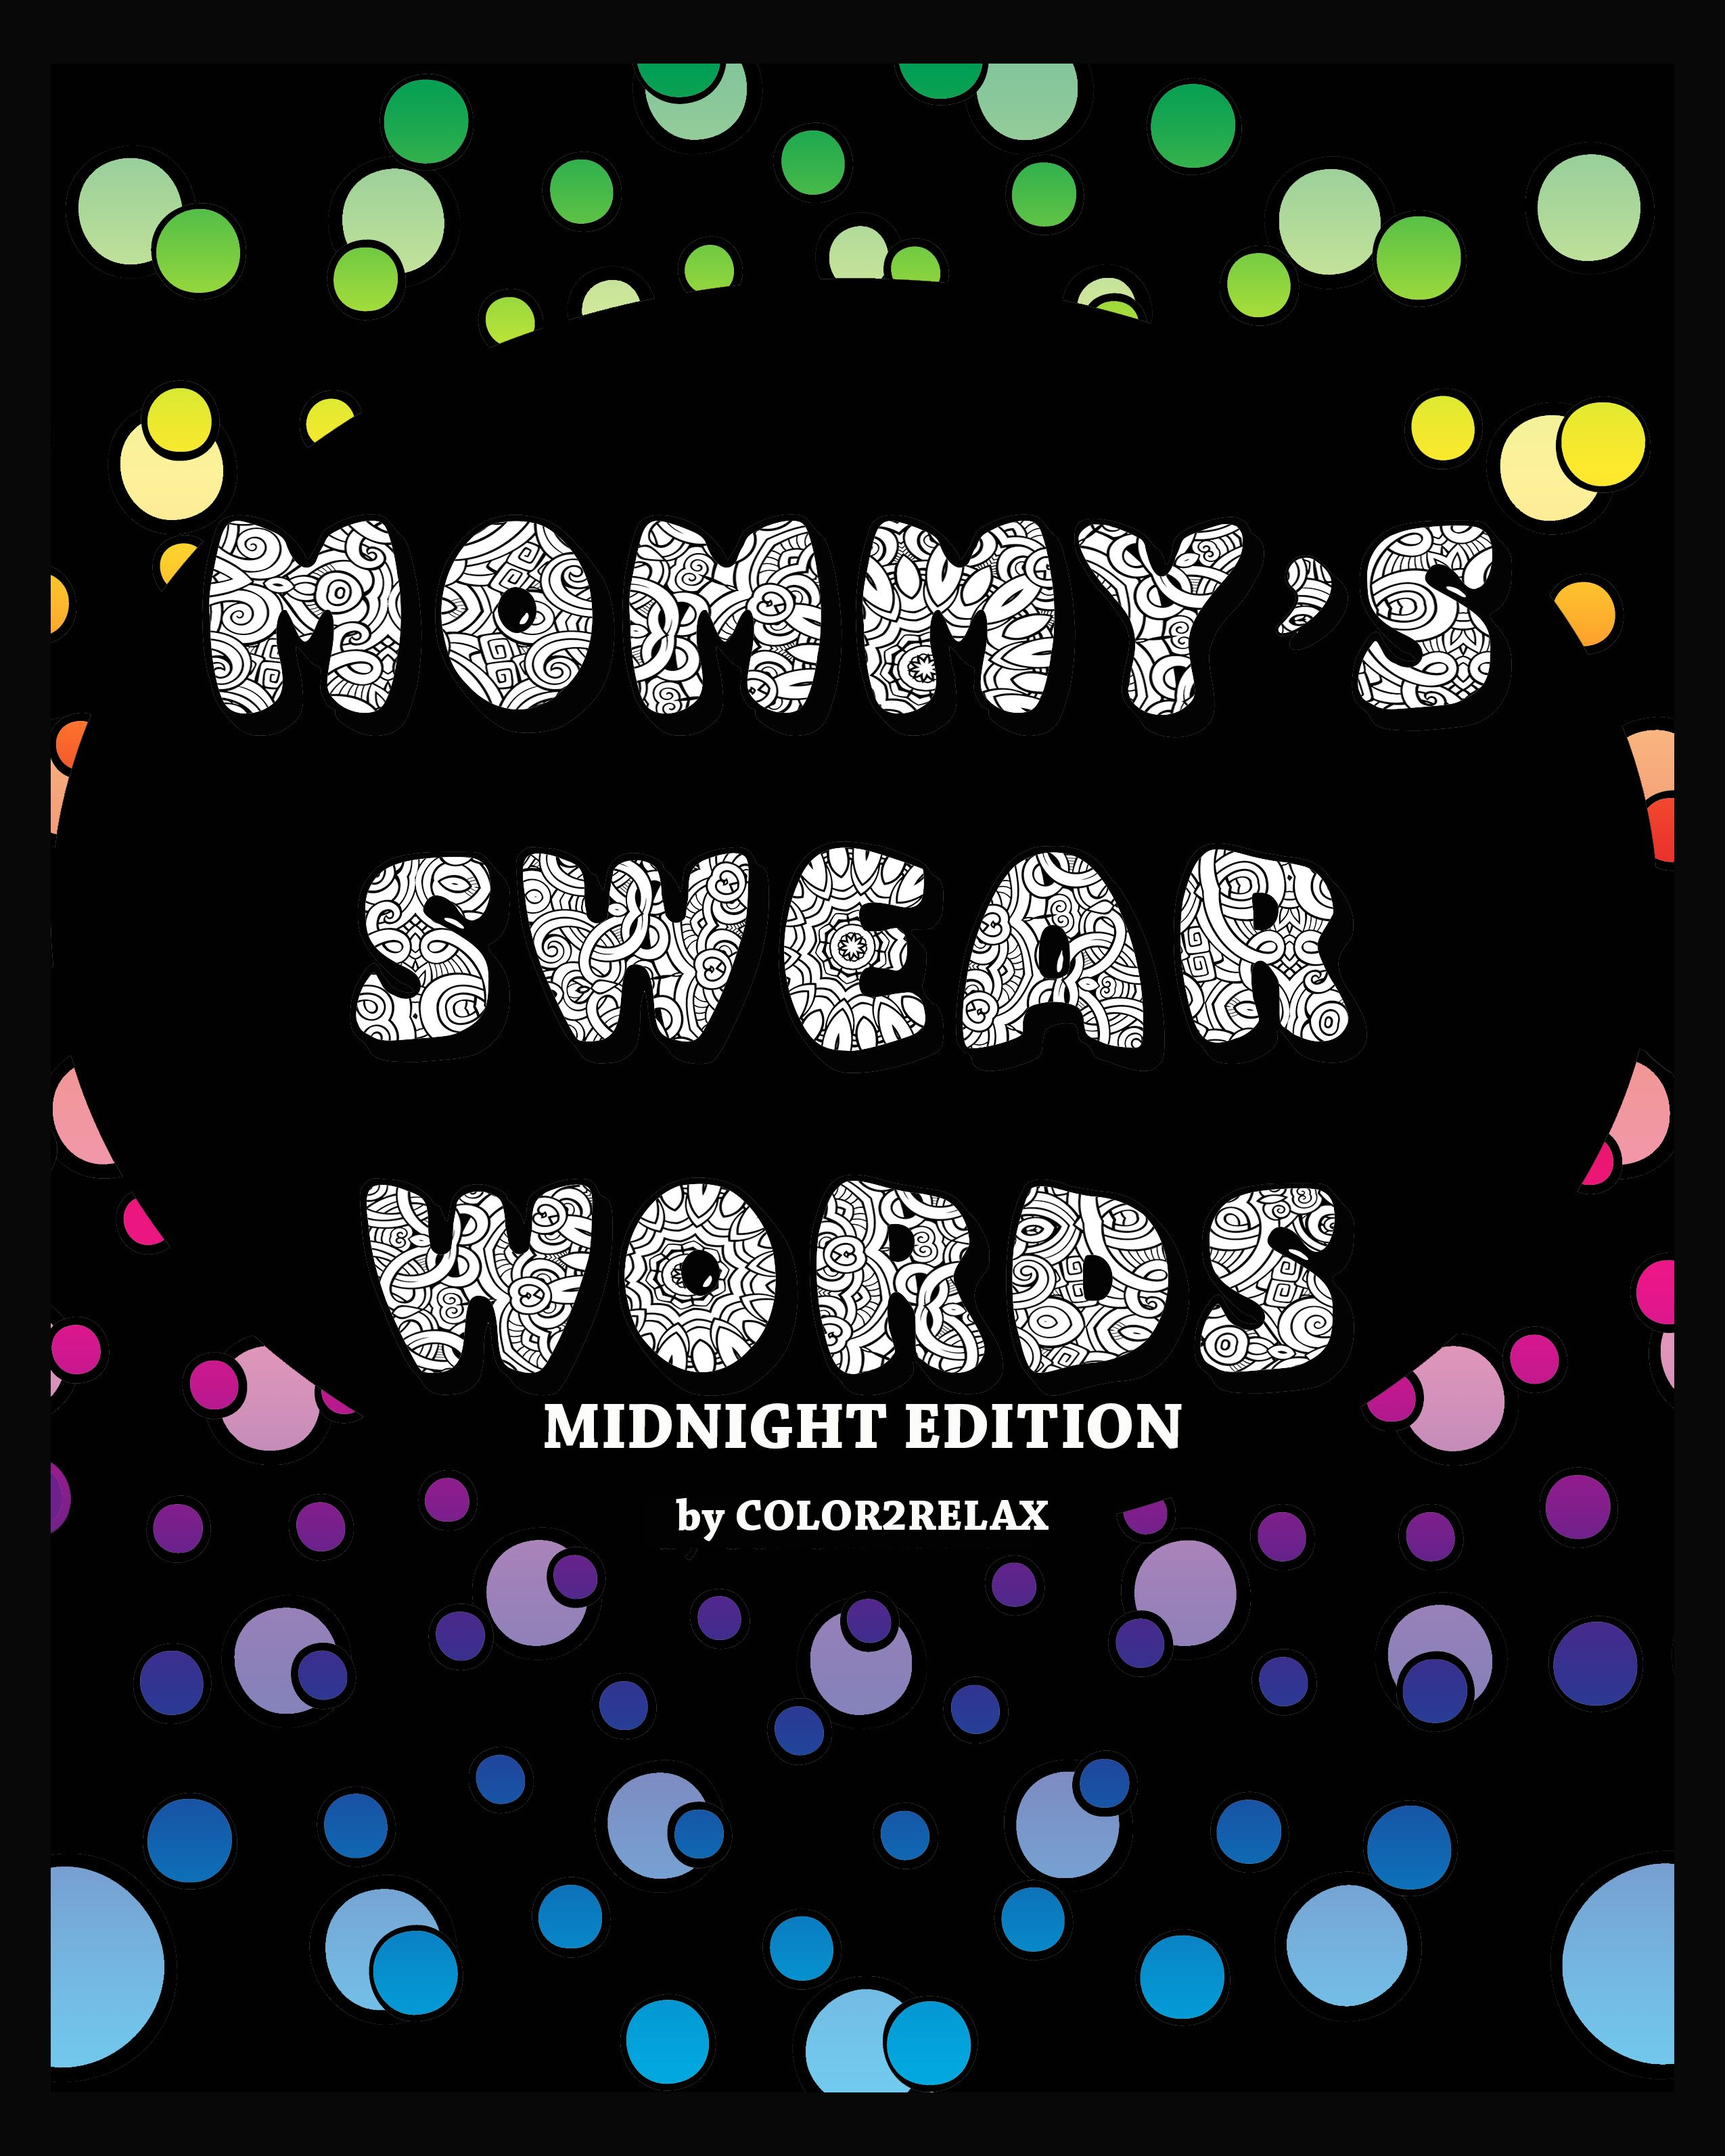 M words coloring pages - Mommy S Swear Words Adult Coloring Book Midnight Edition Fun Designs Inside Of Mother Approved